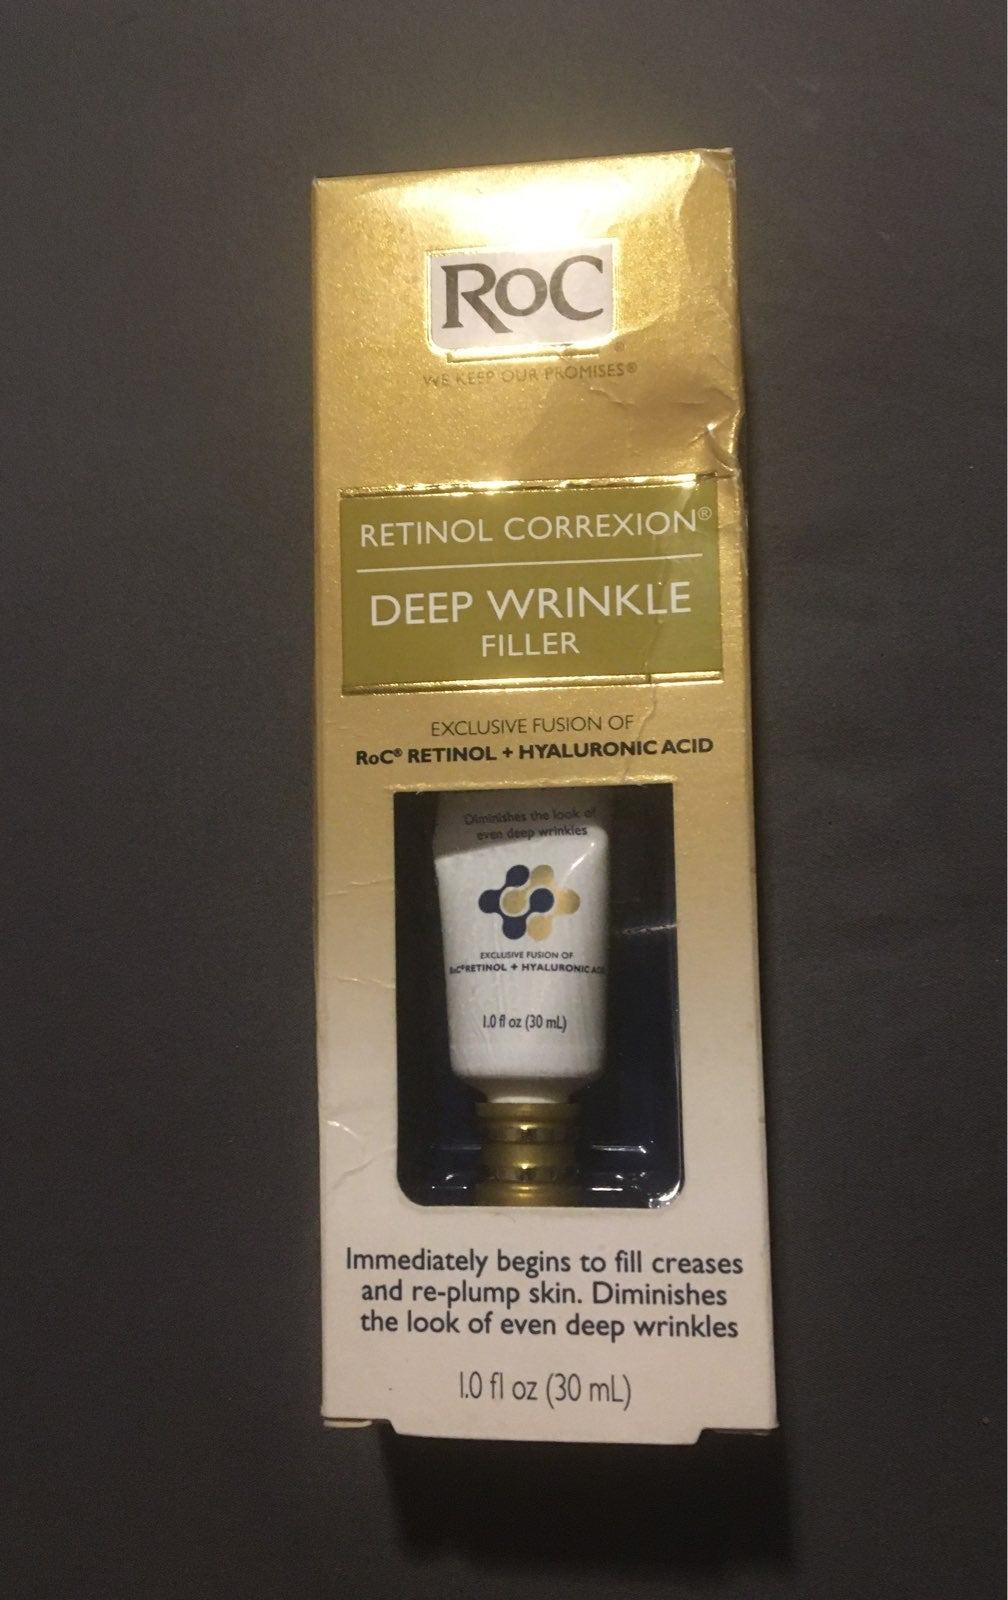 ROC Deep Wrinkle Filler